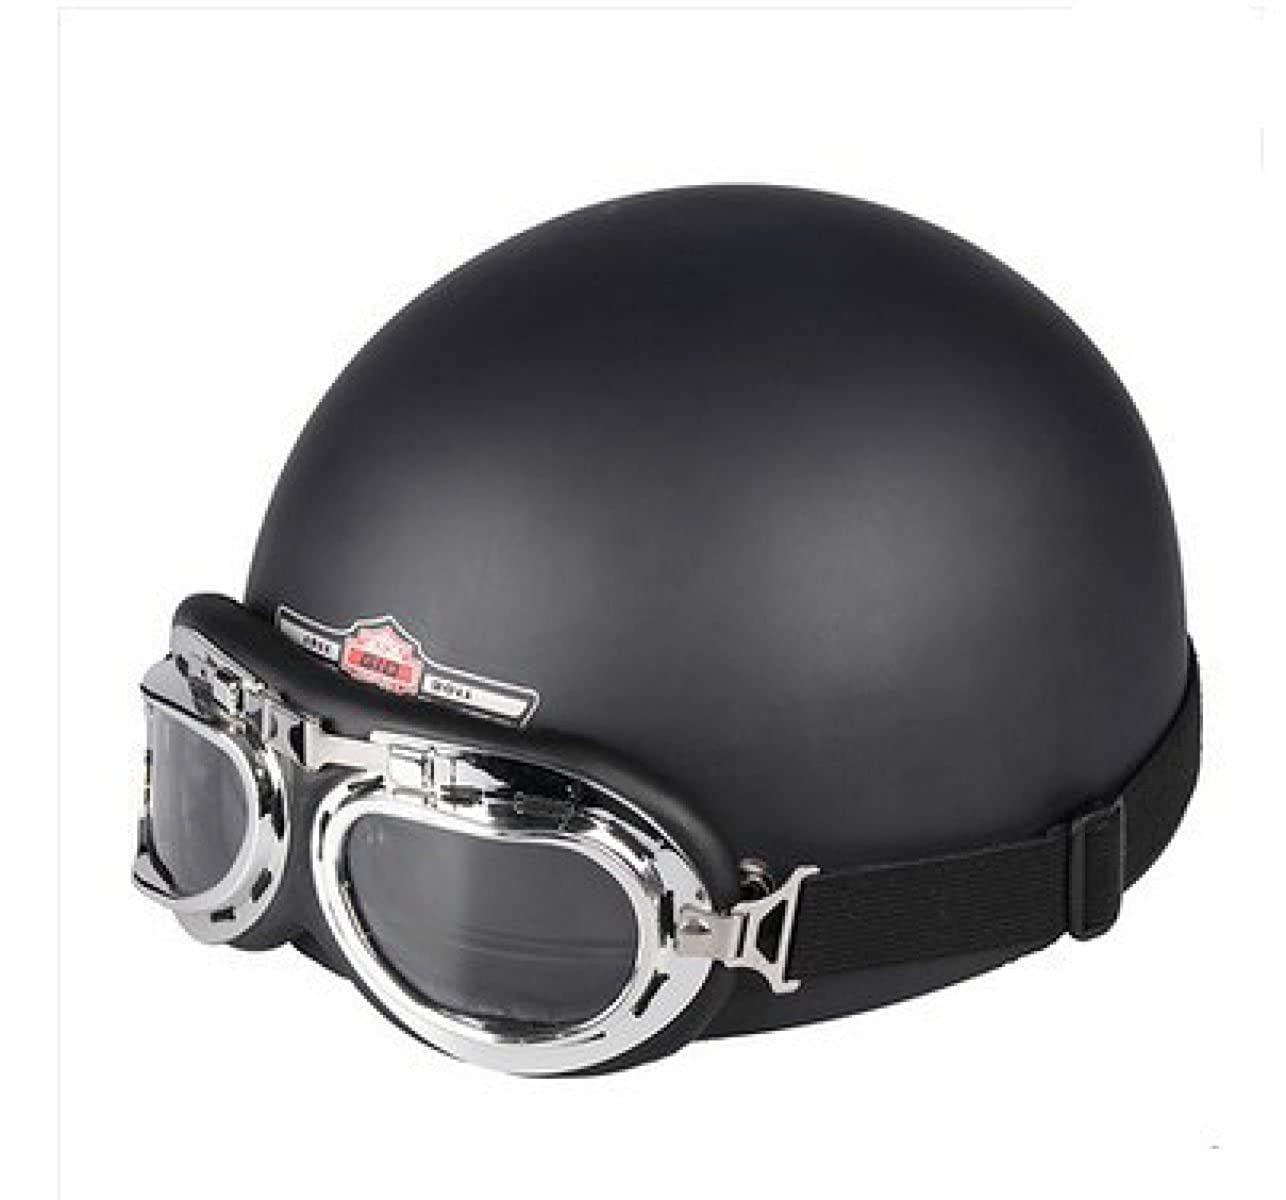 TZQ Street Fashion Batterie Auto Full Cover Nebel Lady Half Helm Mann Helm